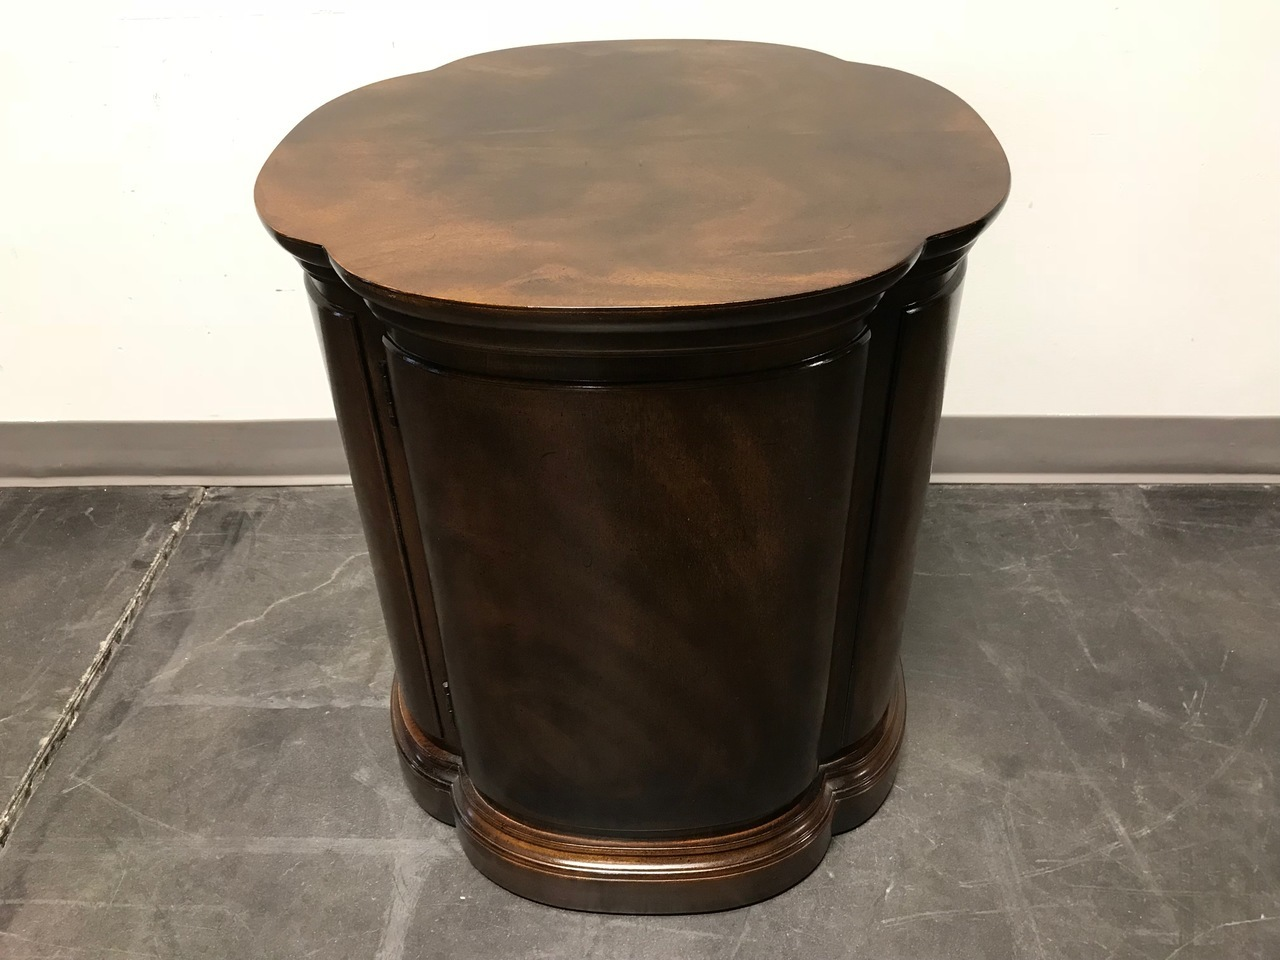 sold out henredon walnut clover shaped end side accent table cabinet boyds fine furnishings drum west elm wood desk nesting bedside tables bookcase target yellow nate berkus bath